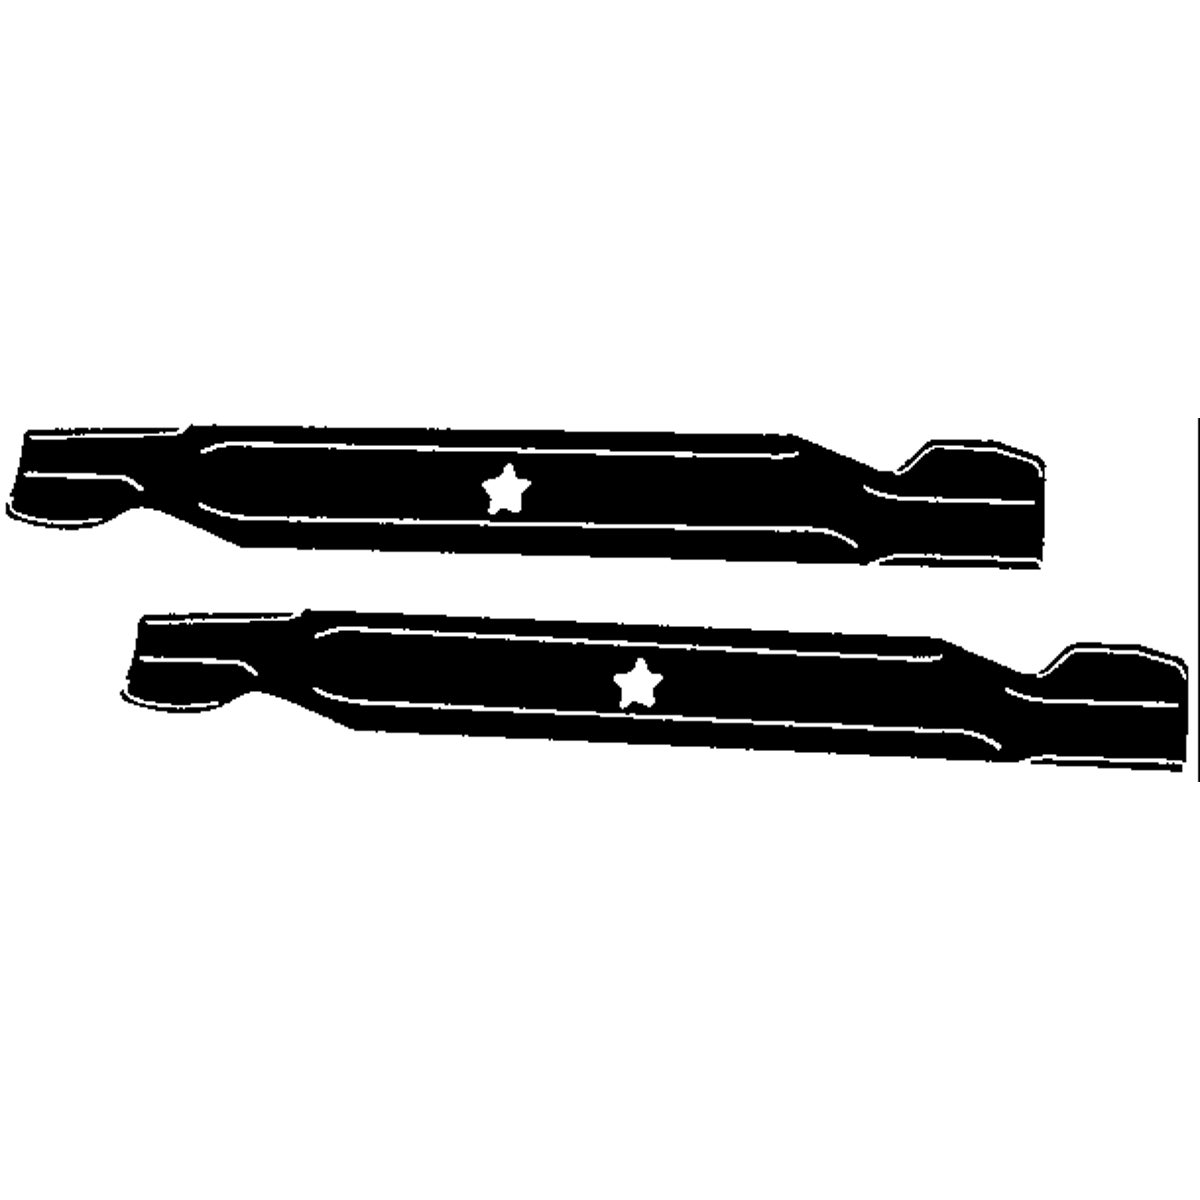 "42"" AYP STAR BLADE SET - 490-110-0136 by Arnold Corp"